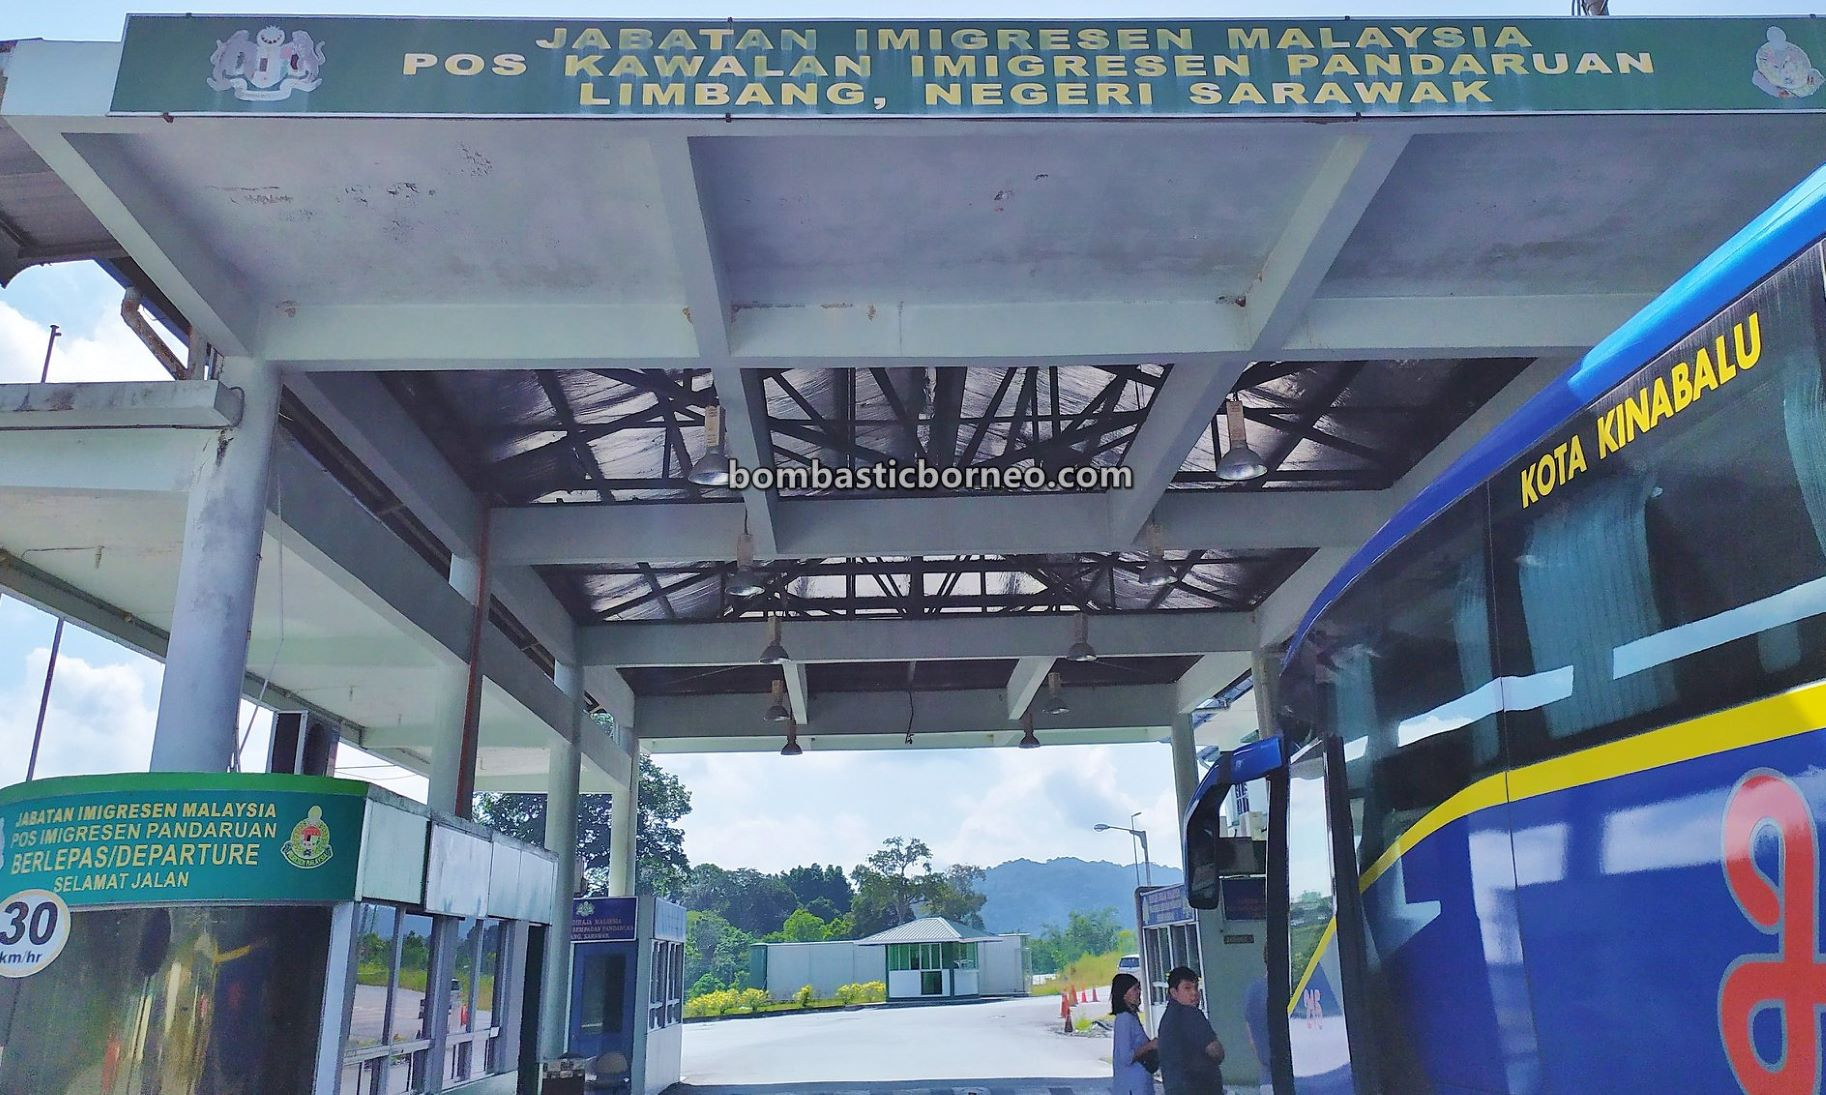 Brunei, Labu Checkpoint, Temburong, Immigration Post, adventure, exploration, backpackers, destination, Tourism, CIQ, travel guide, Trans Borneo, 探索婆罗洲游踪, 马来西亚砂拉越, 林梦边境移民局